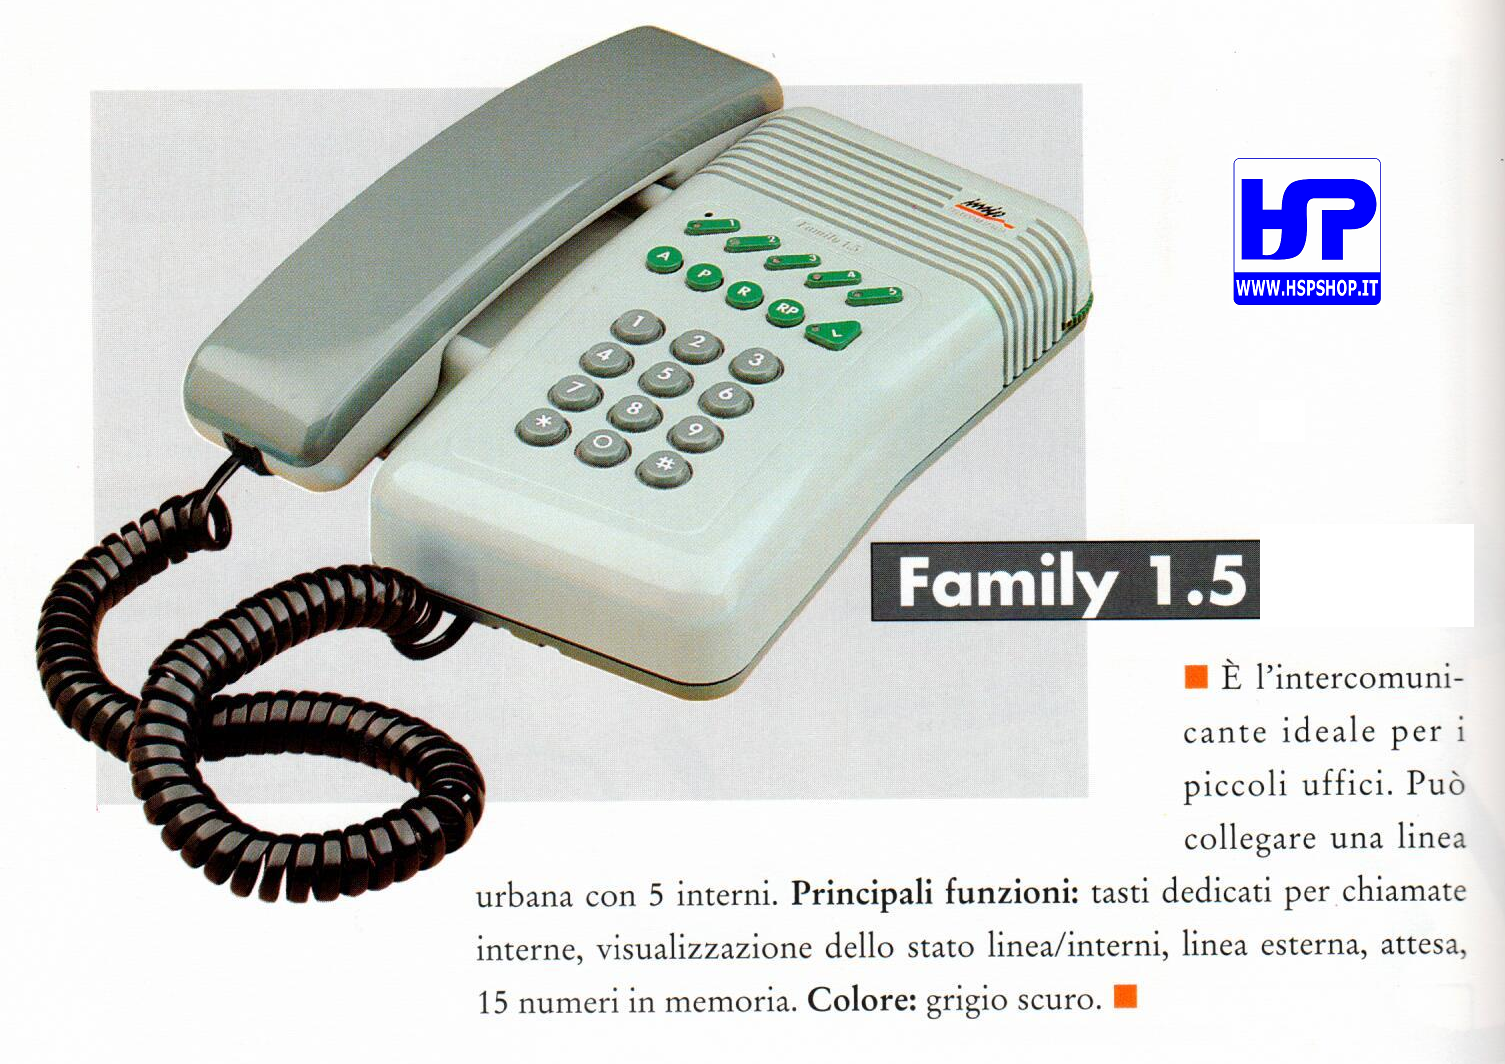 TELECOM - FAMILY 1.5 - TEL. INTERCOMUNICANTE